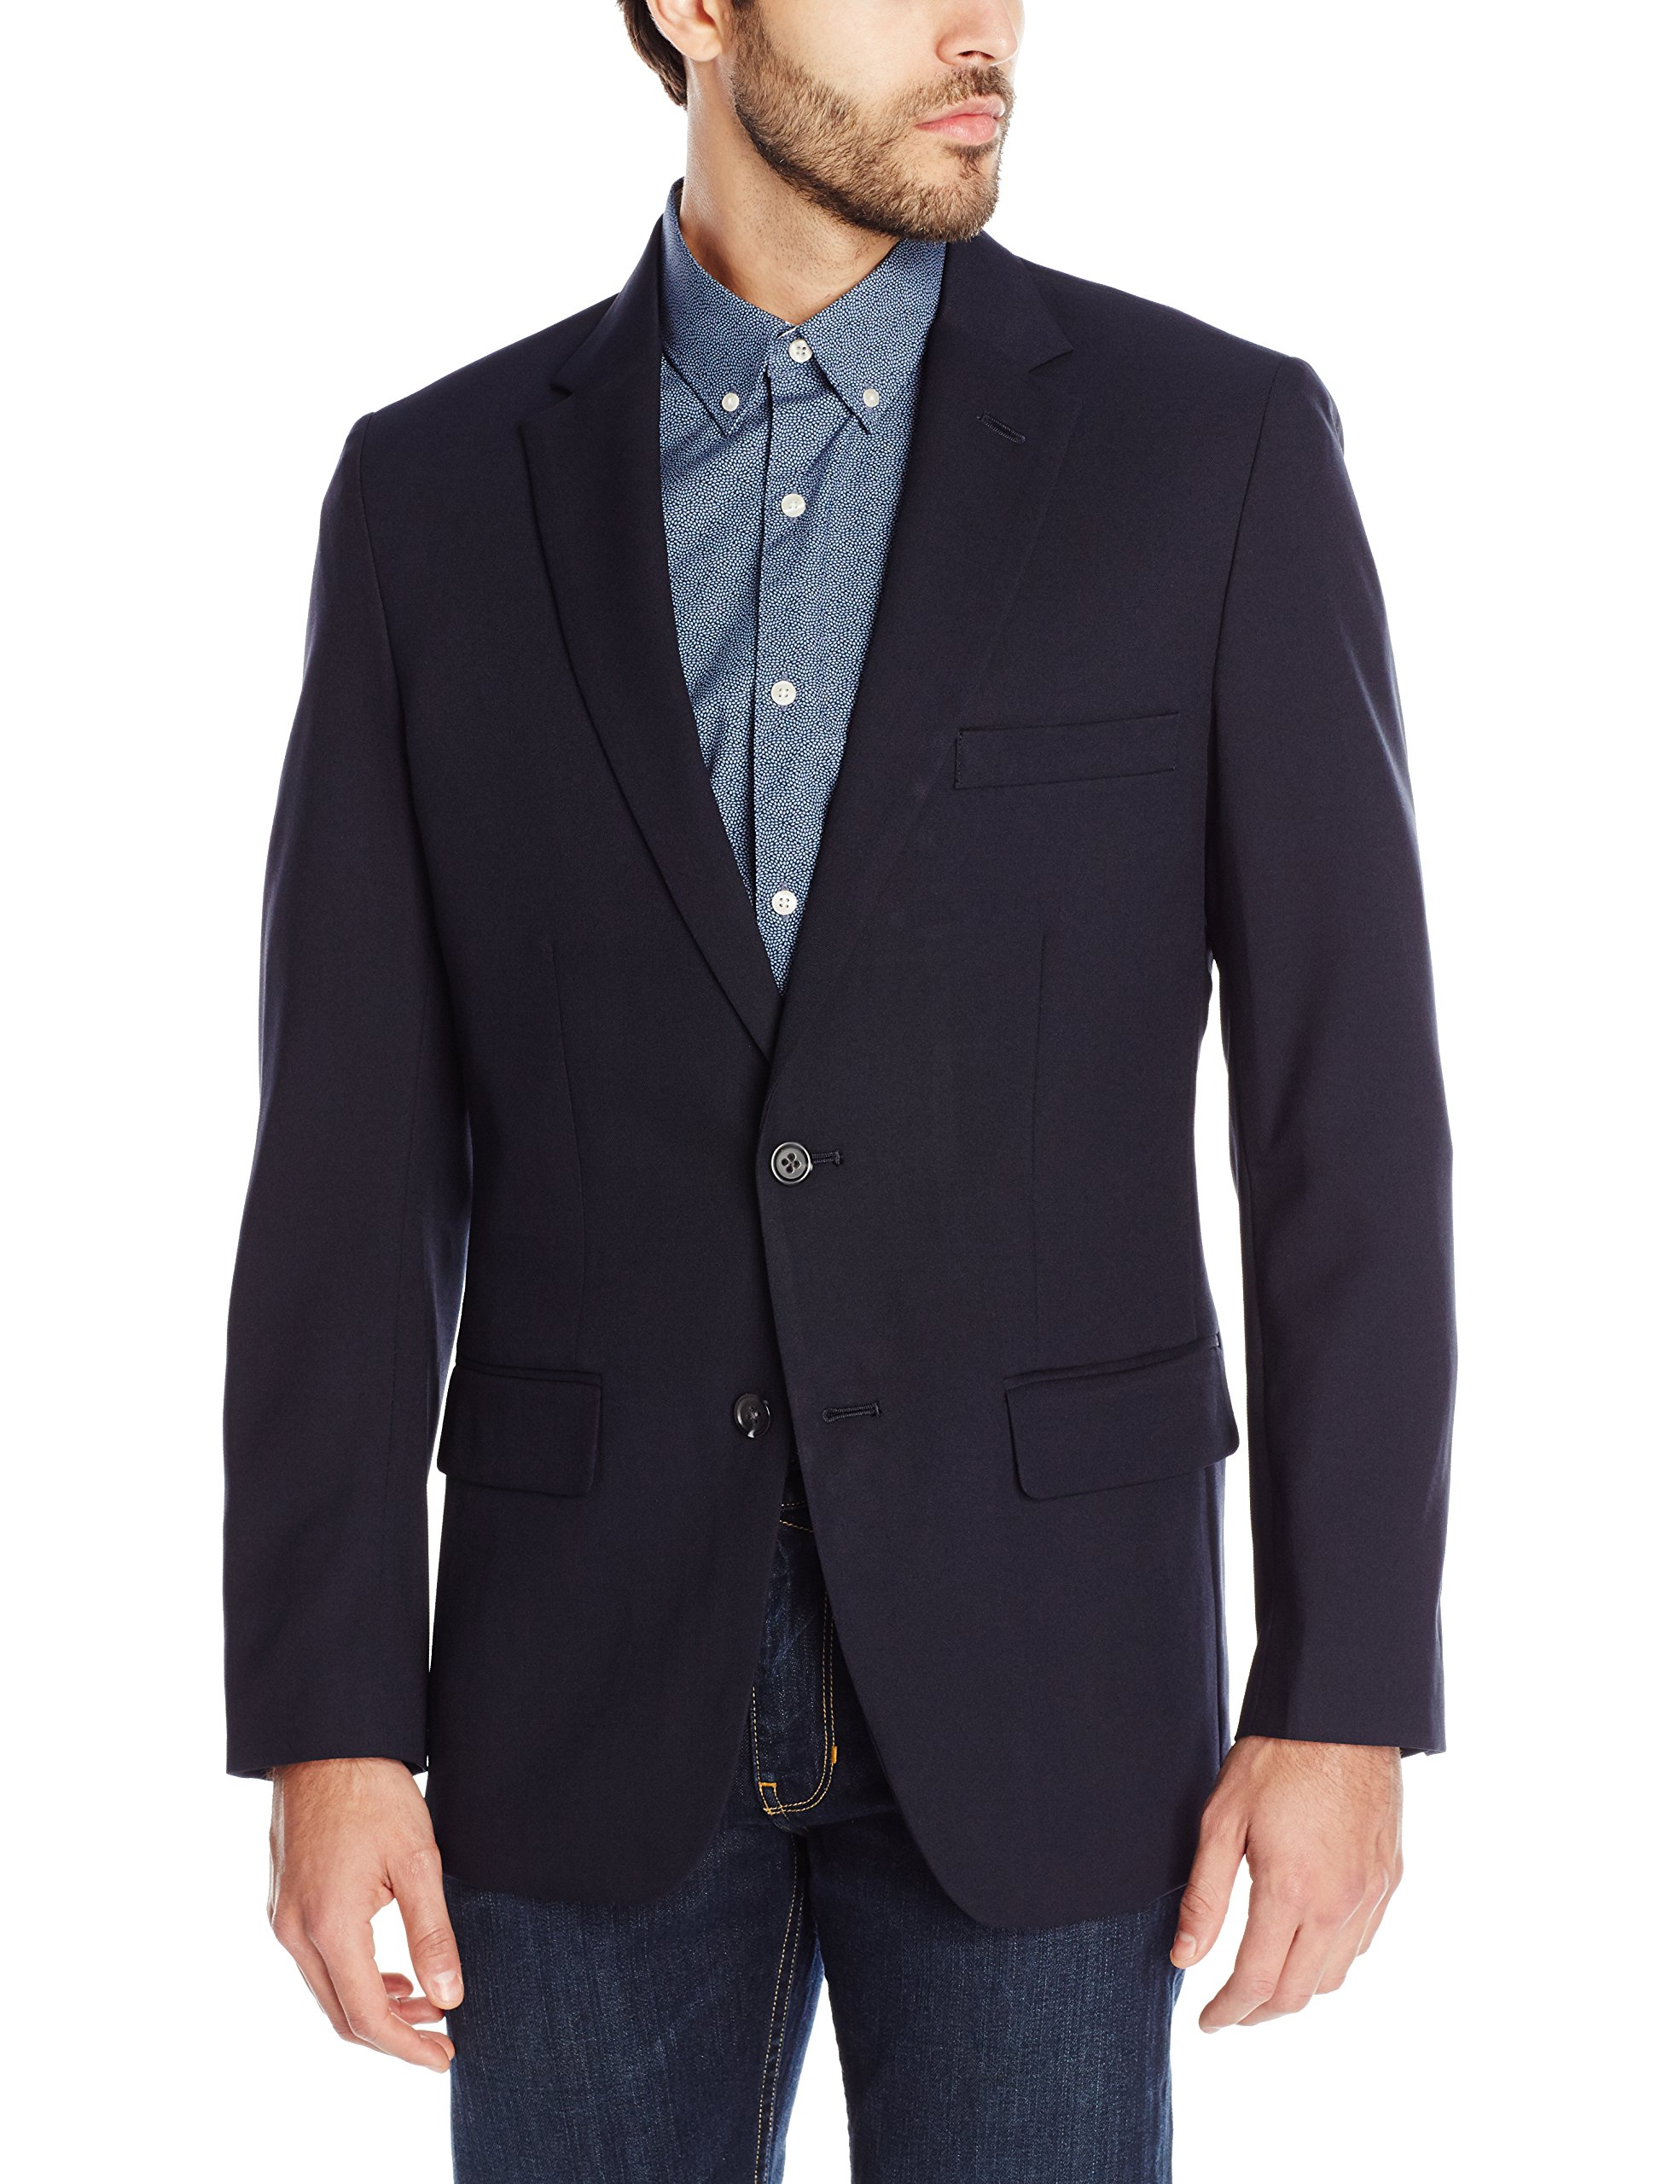 Haggar Clothing Men's Tailored Fit In Motion Blazer - 38 Regular - Midnight